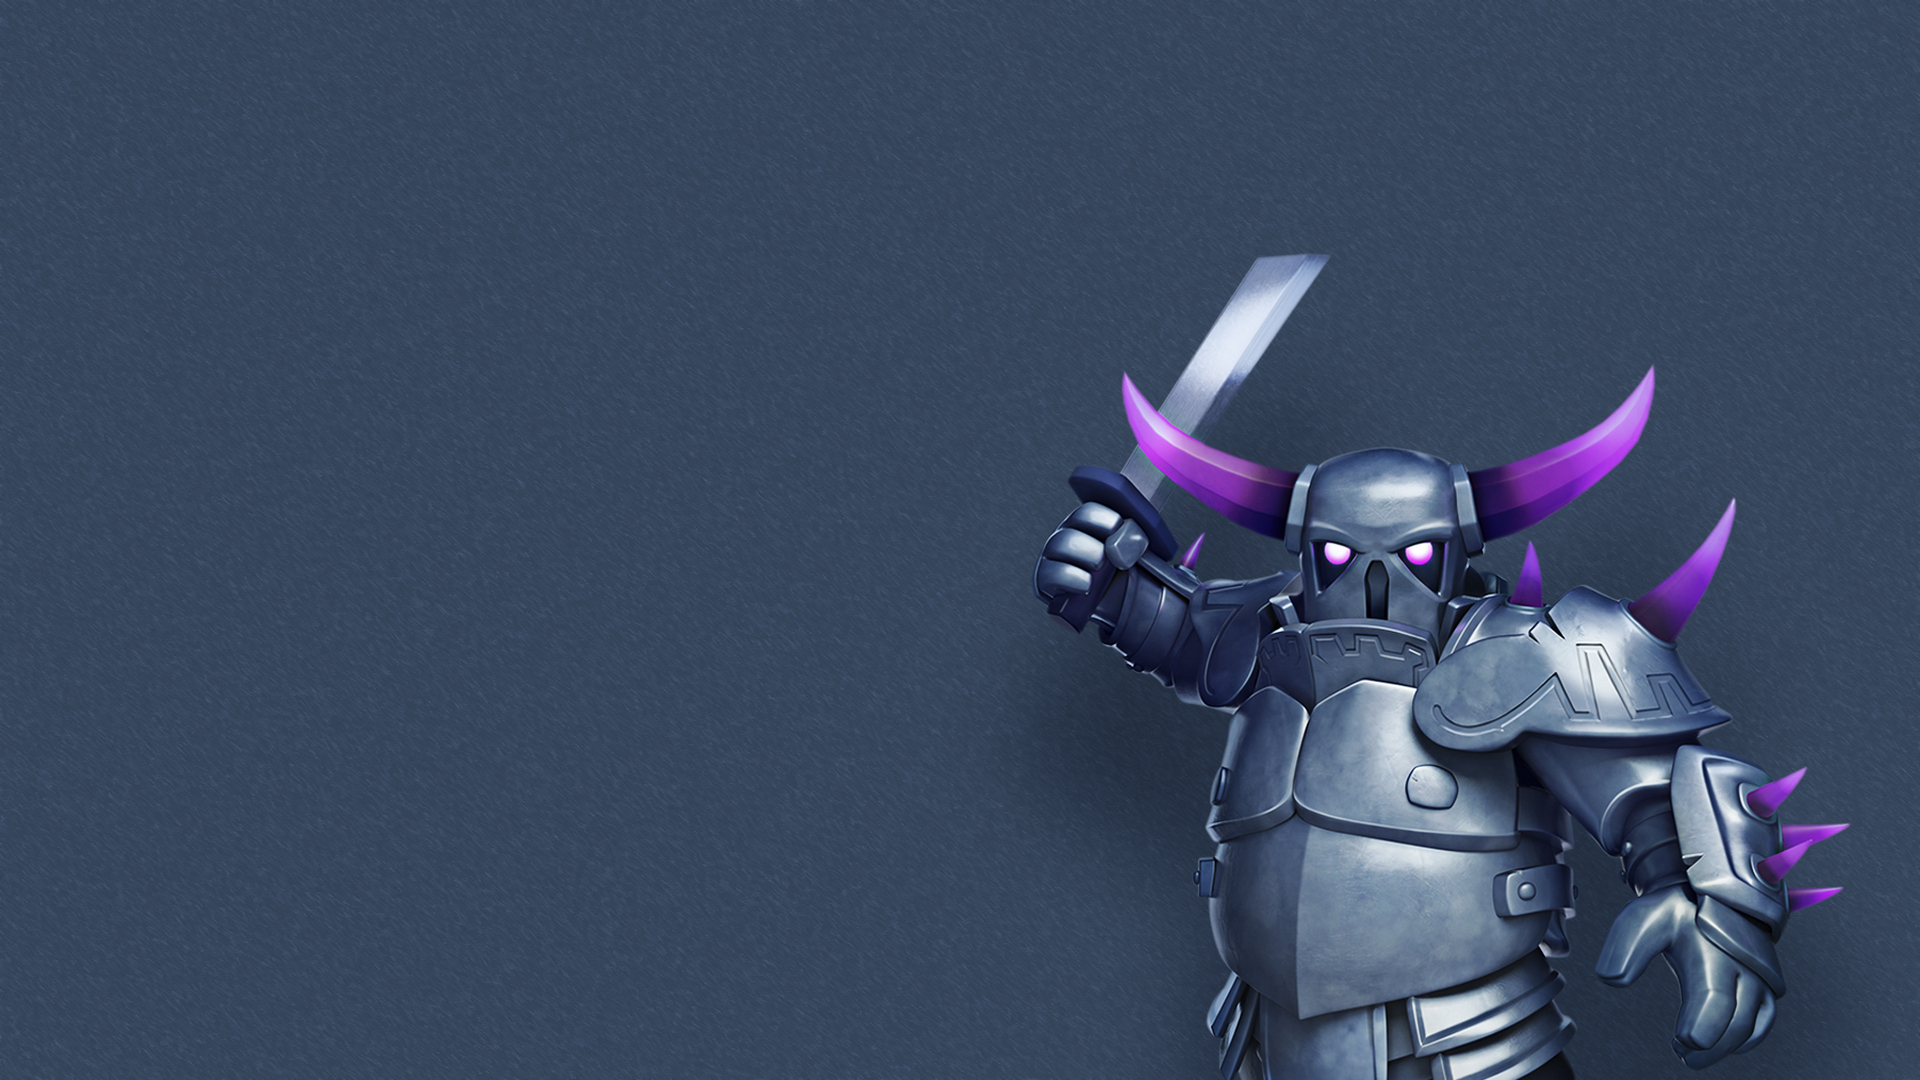 1920x1080 Pekka Clash Of Clans Laptop Full Hd 1080p Hd 4k Wallpapers Images Backgrounds